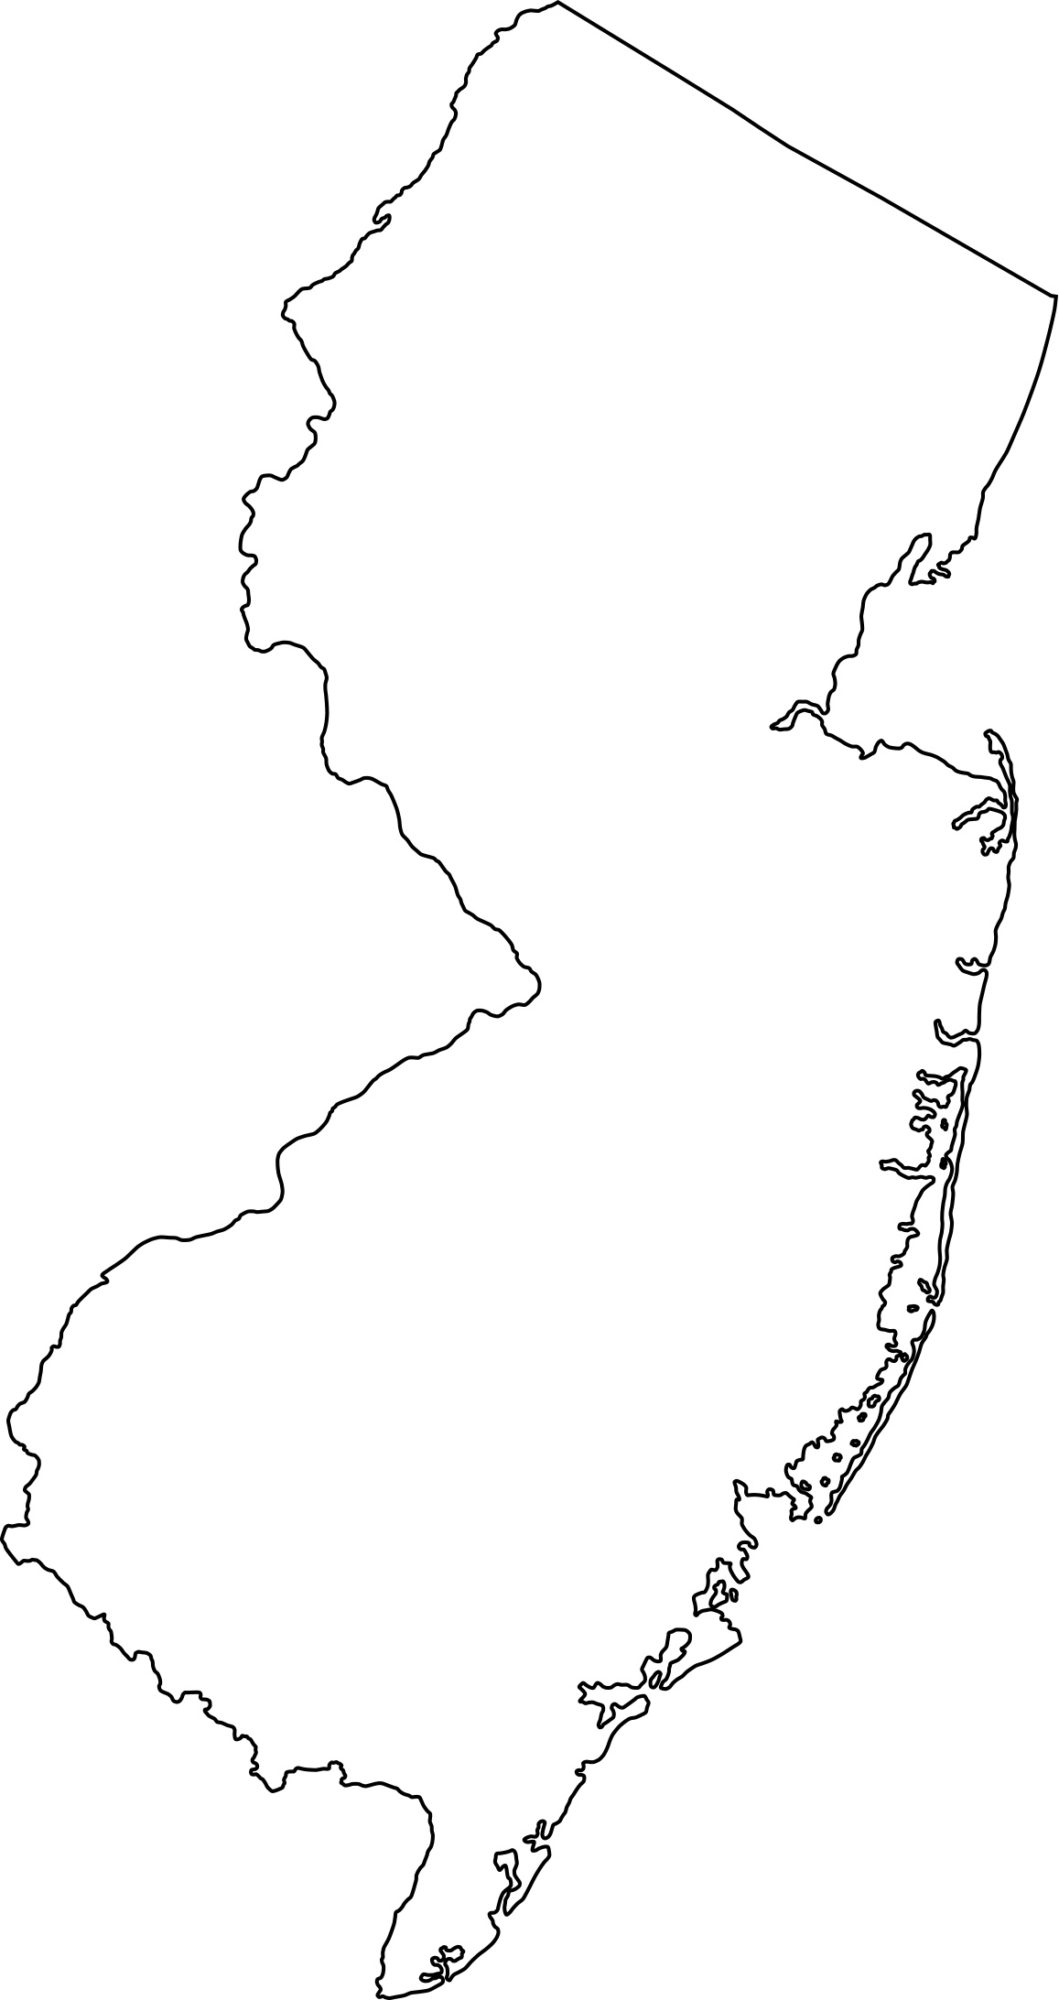 New Jersey Blank Outline Map | Large Printable HD Map